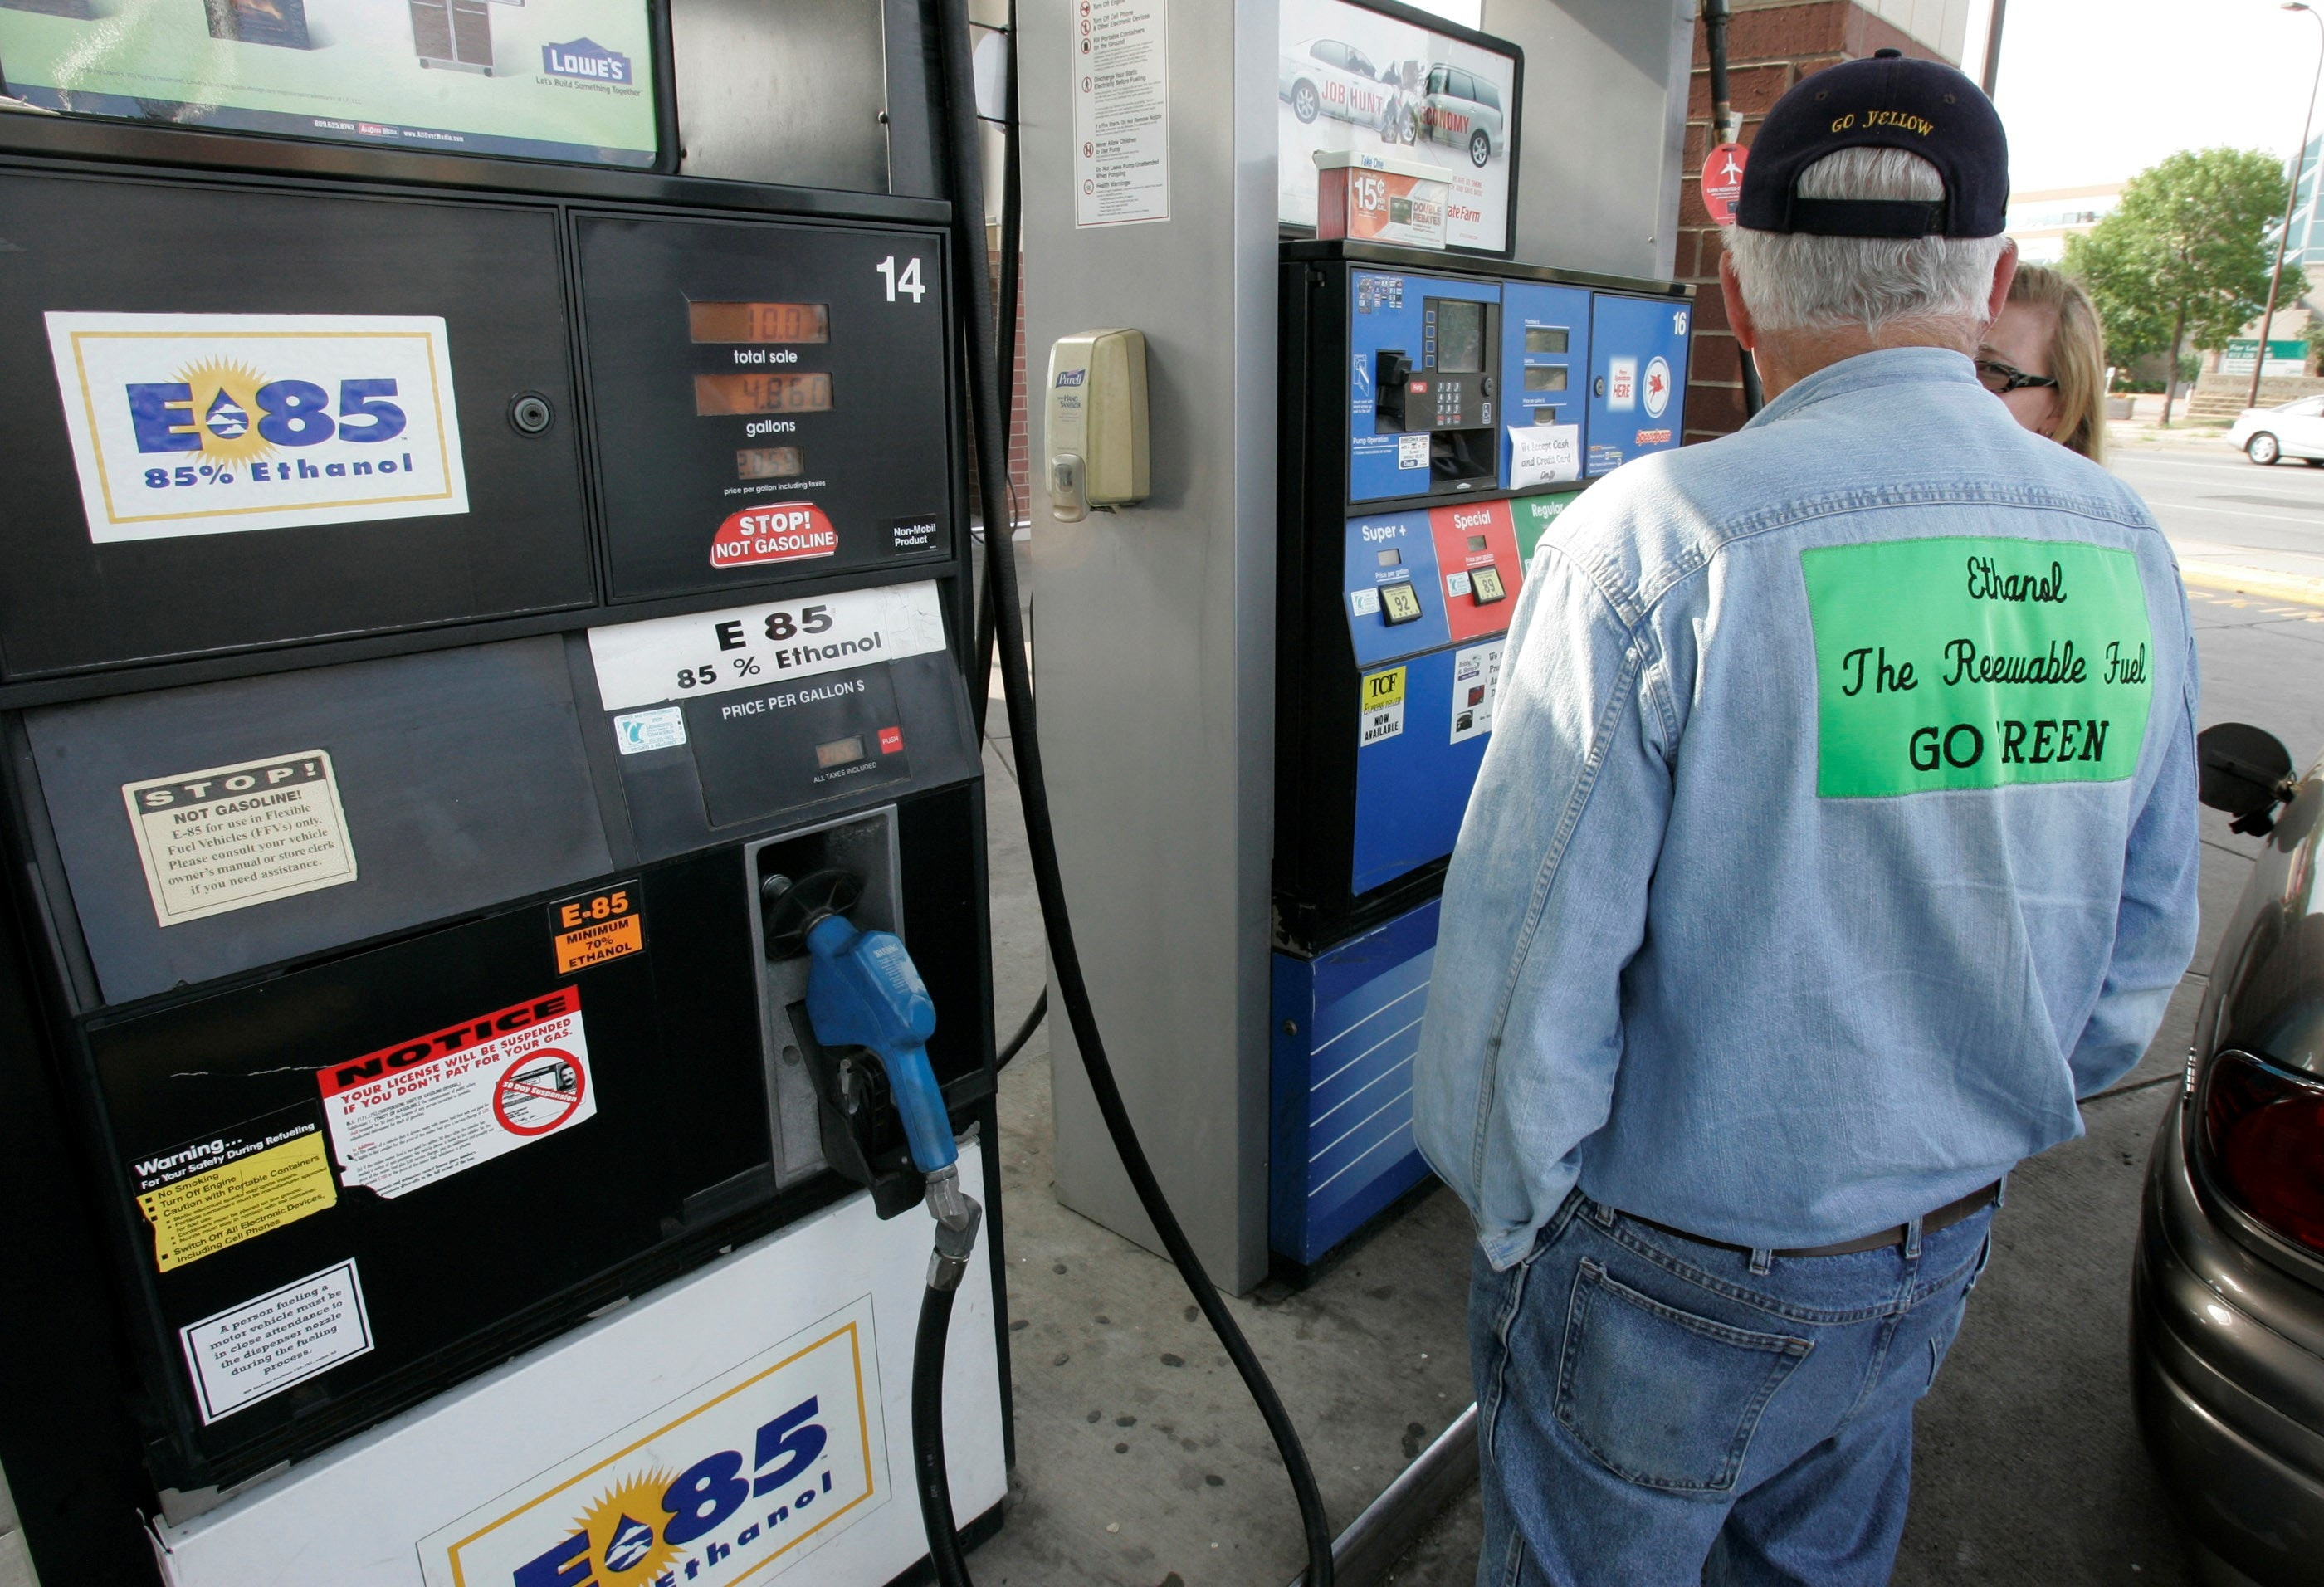 The government aims to boost ethanol without evidence that it saves money or helps the environment